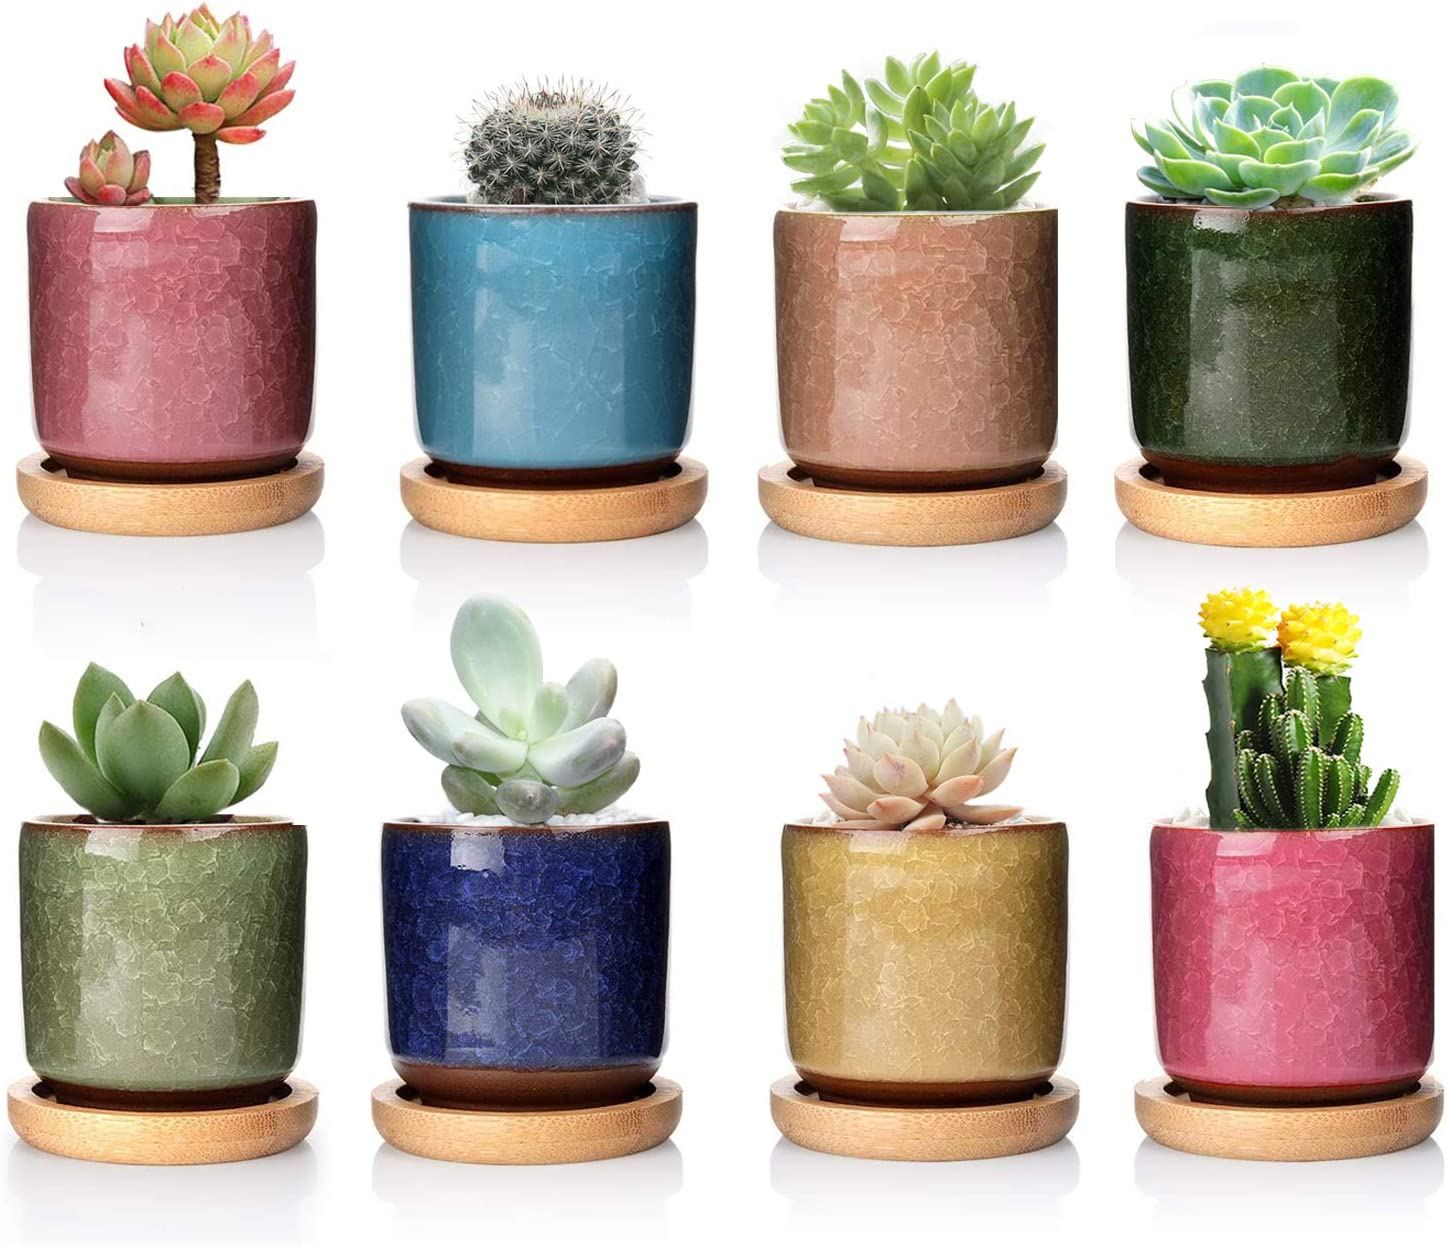 DeeCoo 8 Pack 2.5 inch Ceramic Ice Crack Succulent Plant Pot with Bamboo Tray,Mini Pots for Plants, Cactus Plant Pot Flower Pot Container Planter for Home Garden Office Decoration(Plants NOT Included)